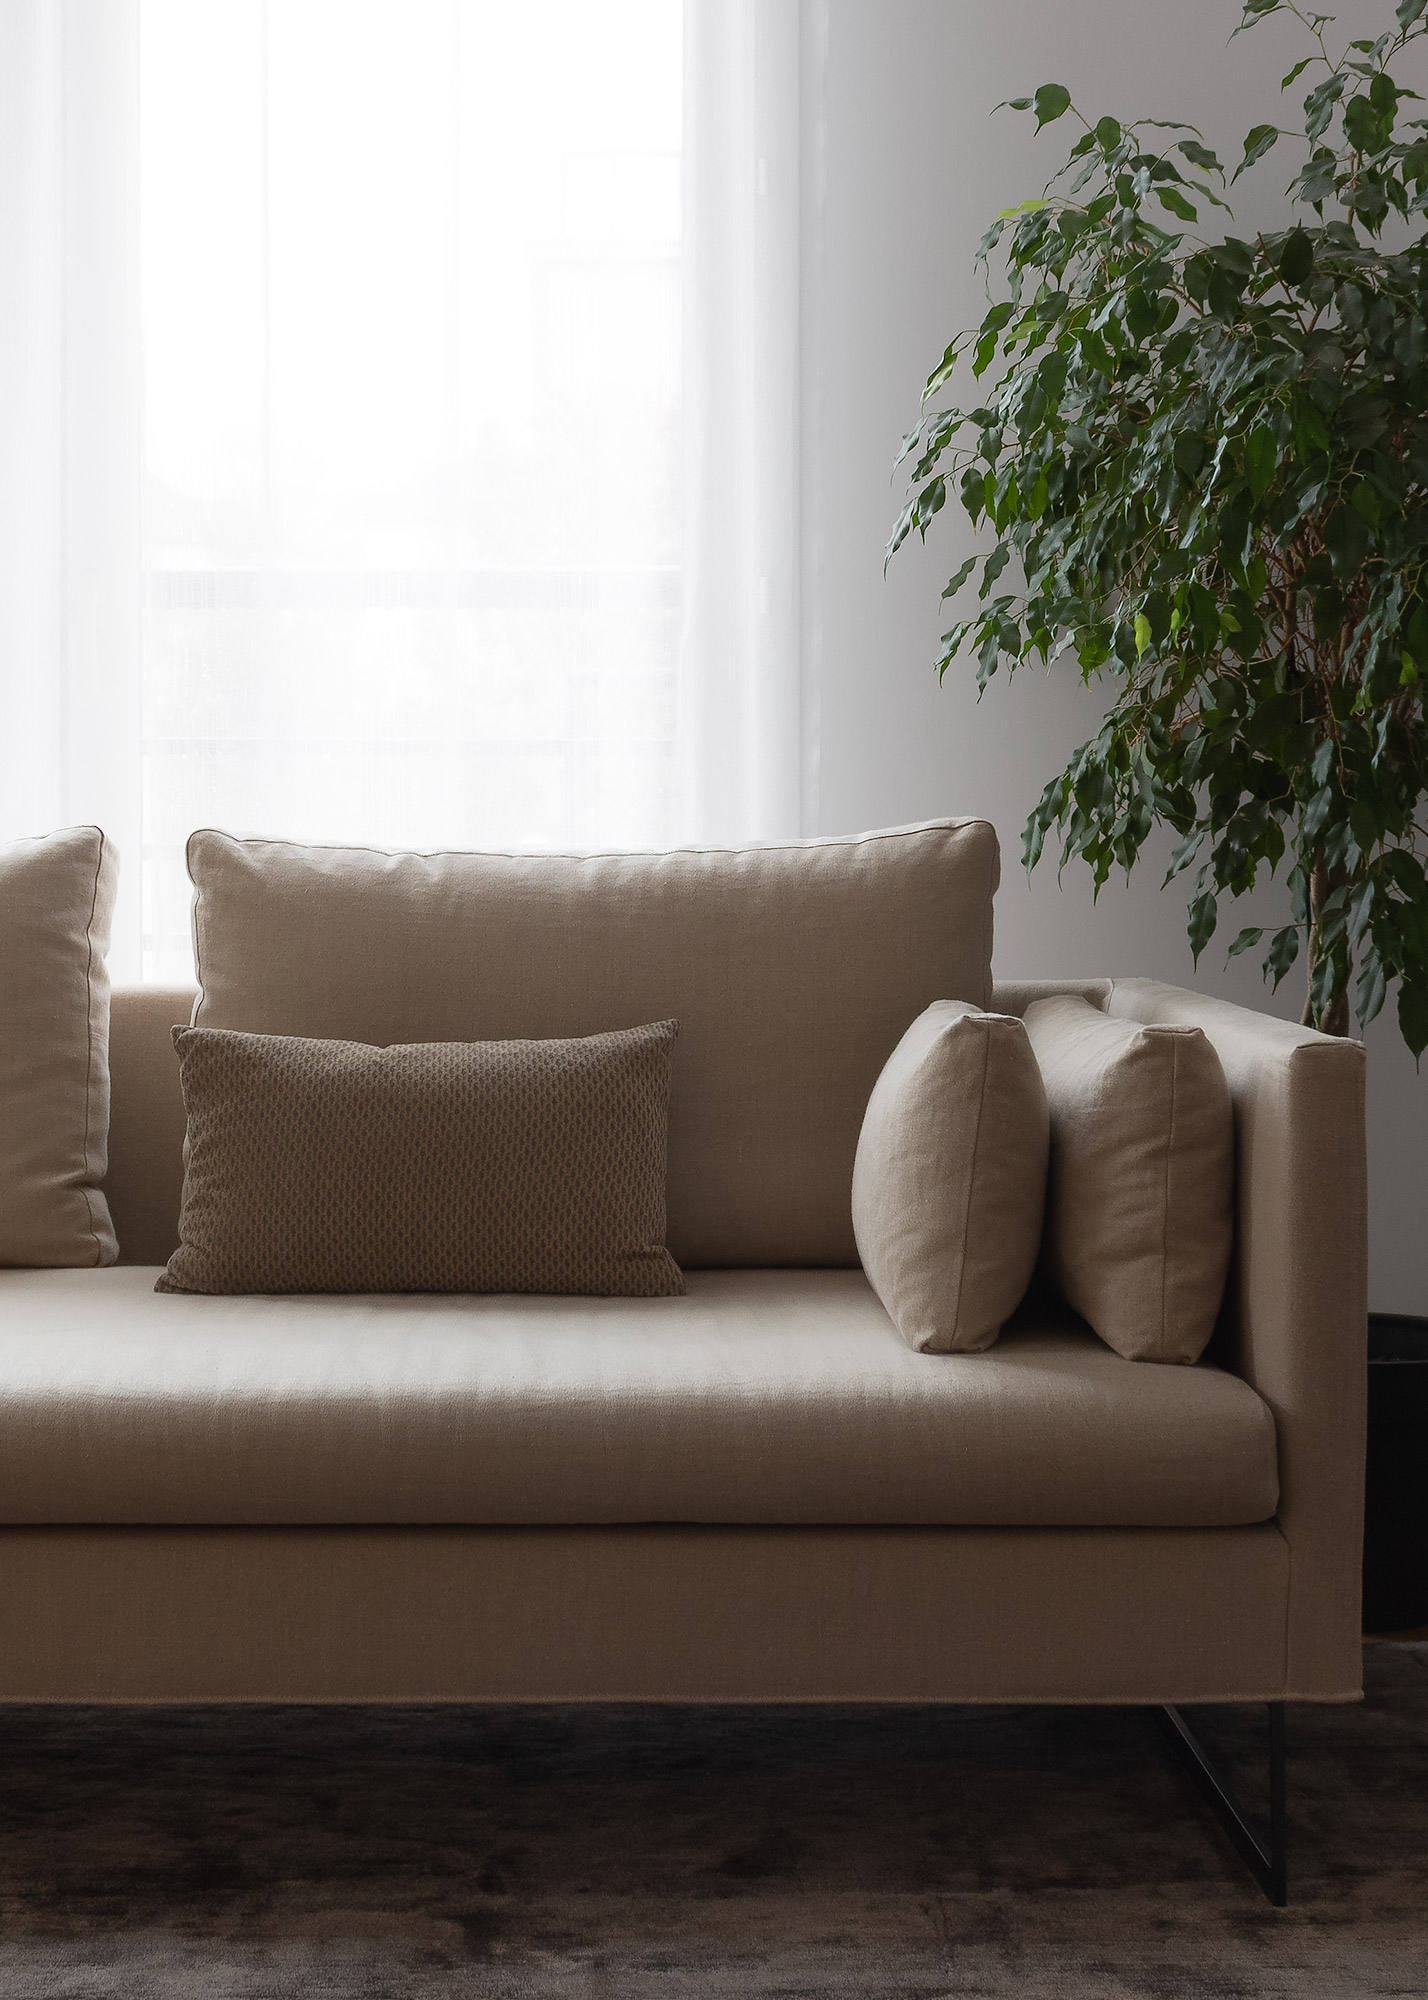 Contemporary sofa in natural linen in front of window with silk rug and ficus plant